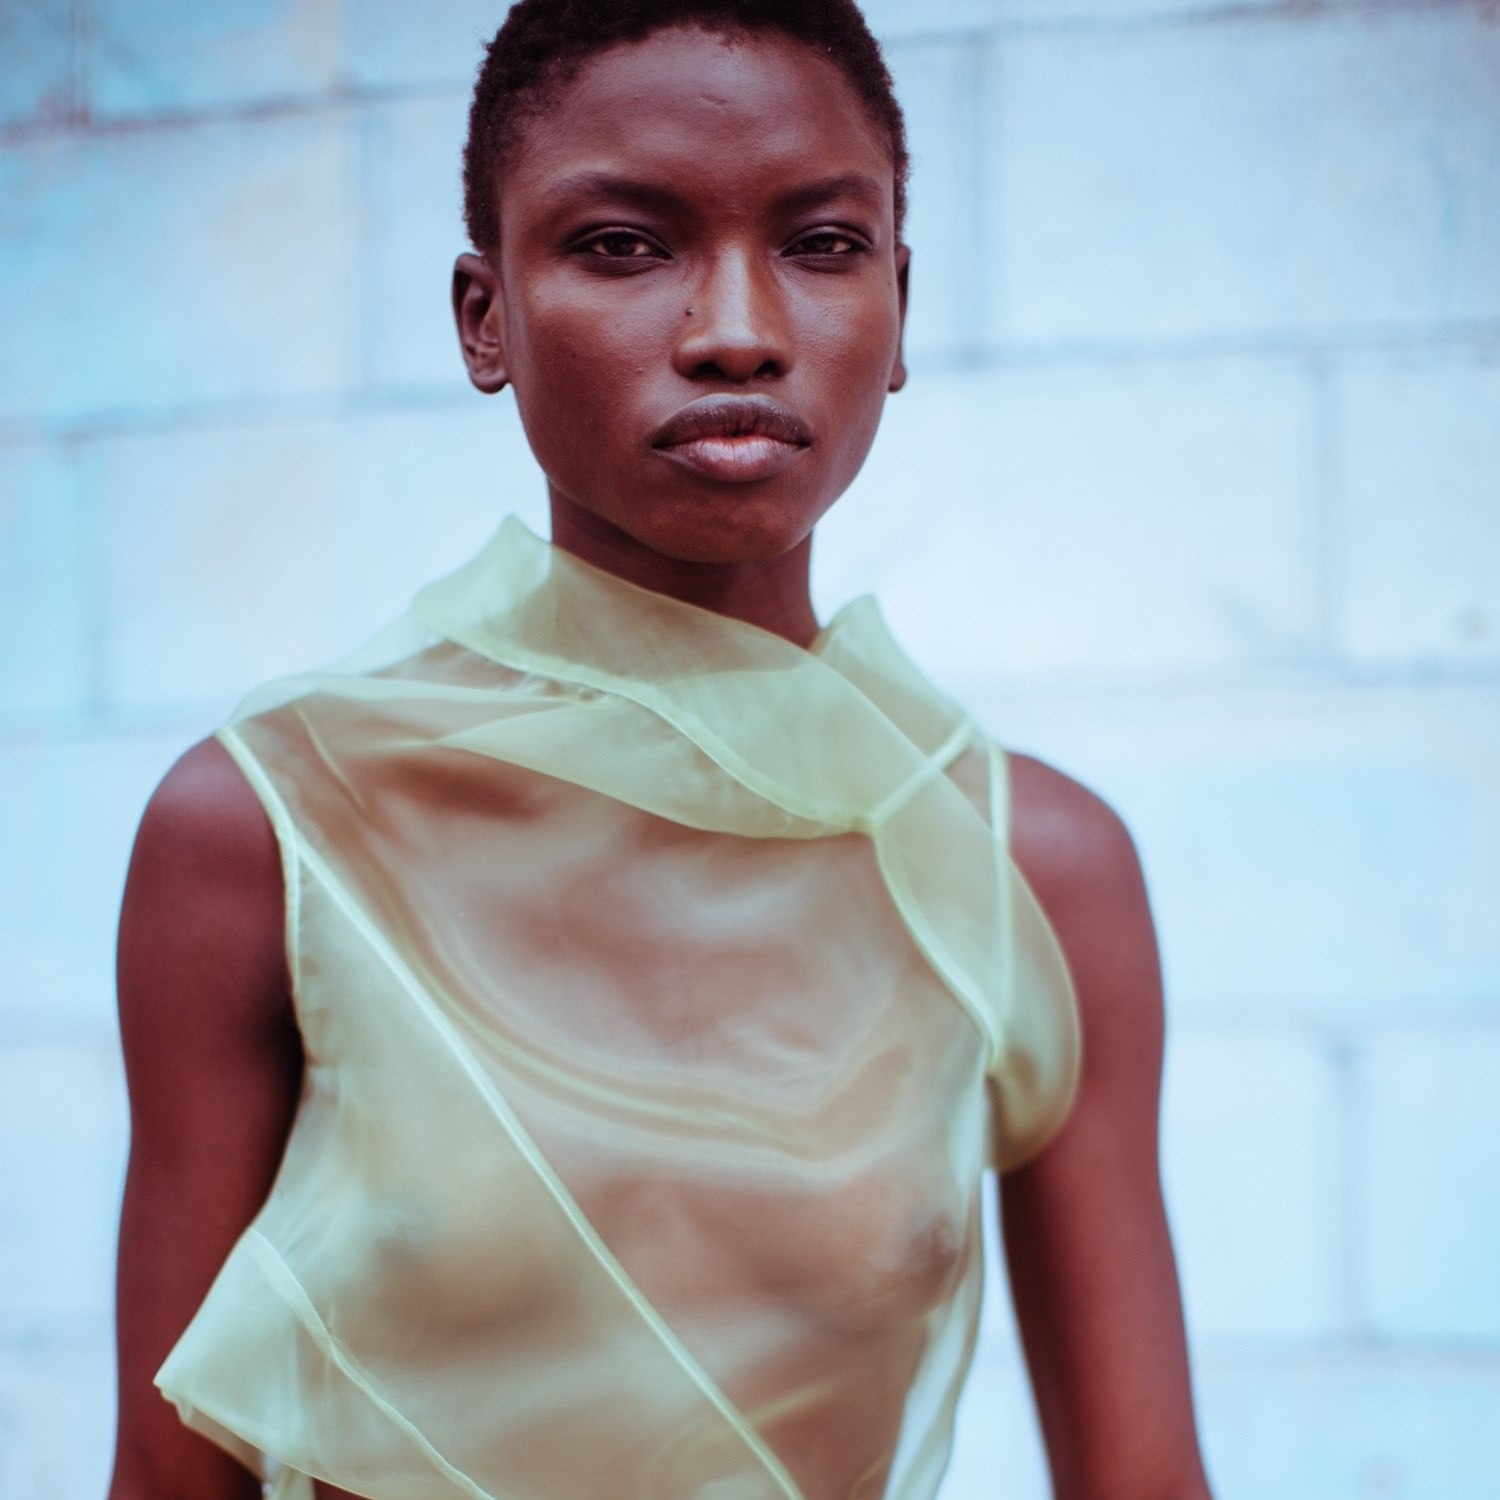 Eckhaus Latta's SS18 Collection featured on Dazed Digital  via .